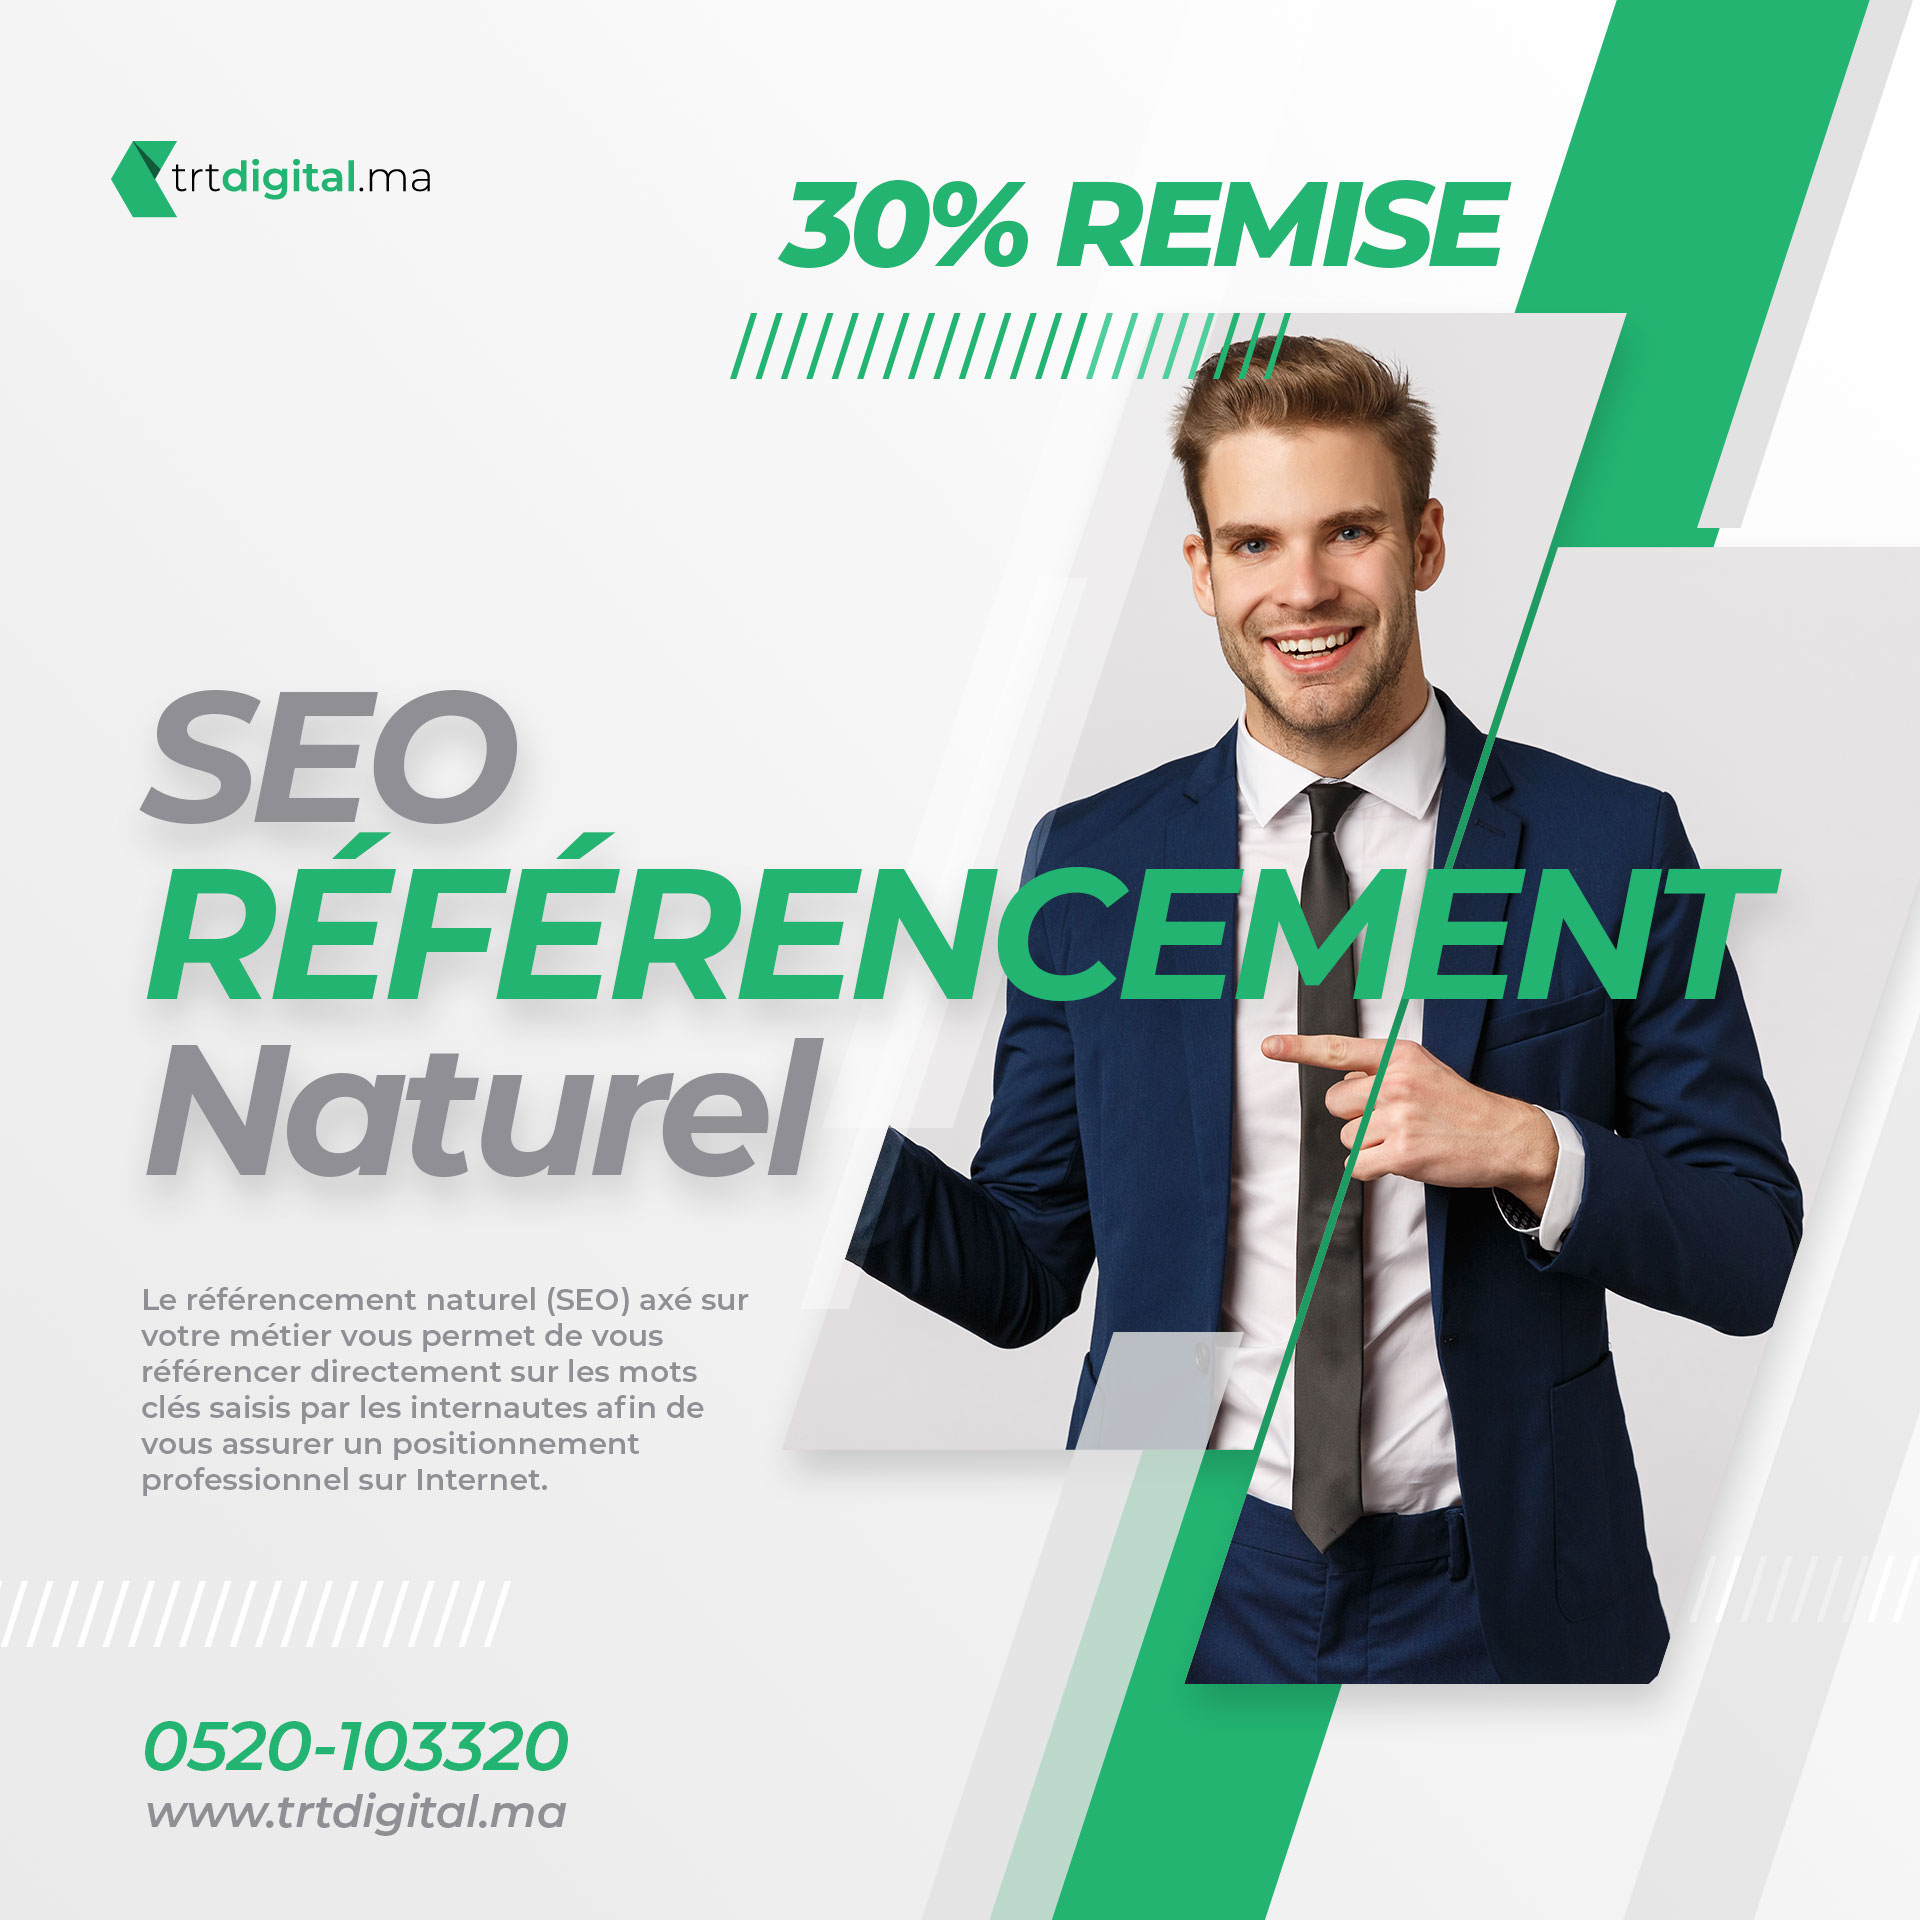 seo referencement naturel trt digital ads 2 - Contact